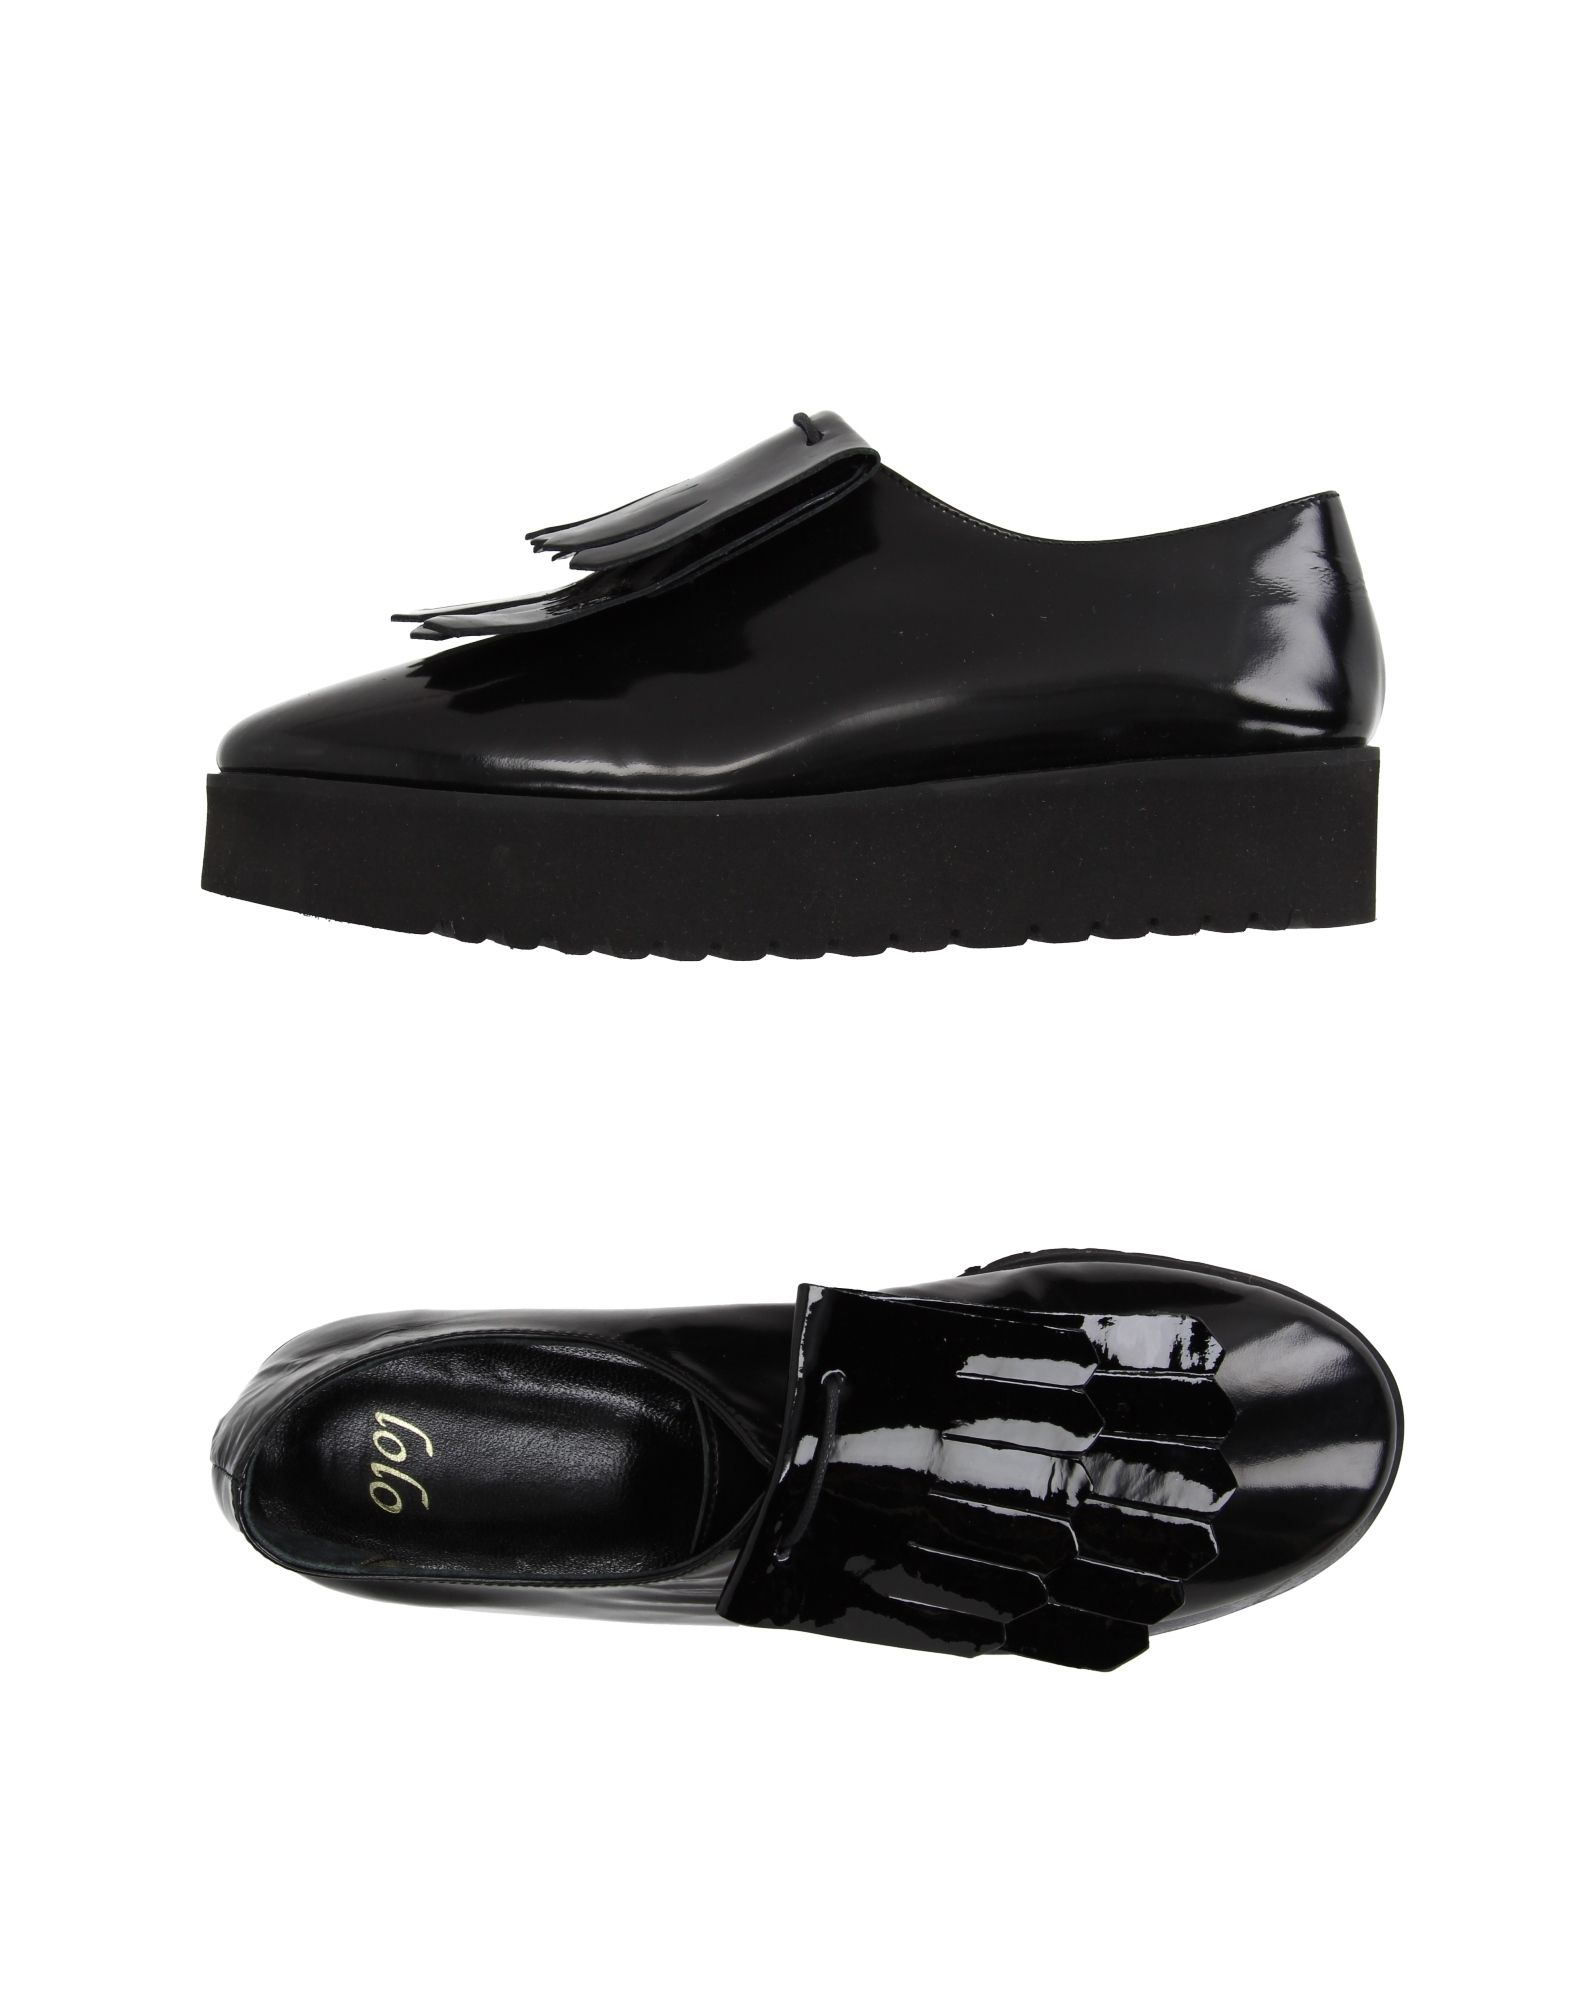 LOLO Laced Shoes in Black